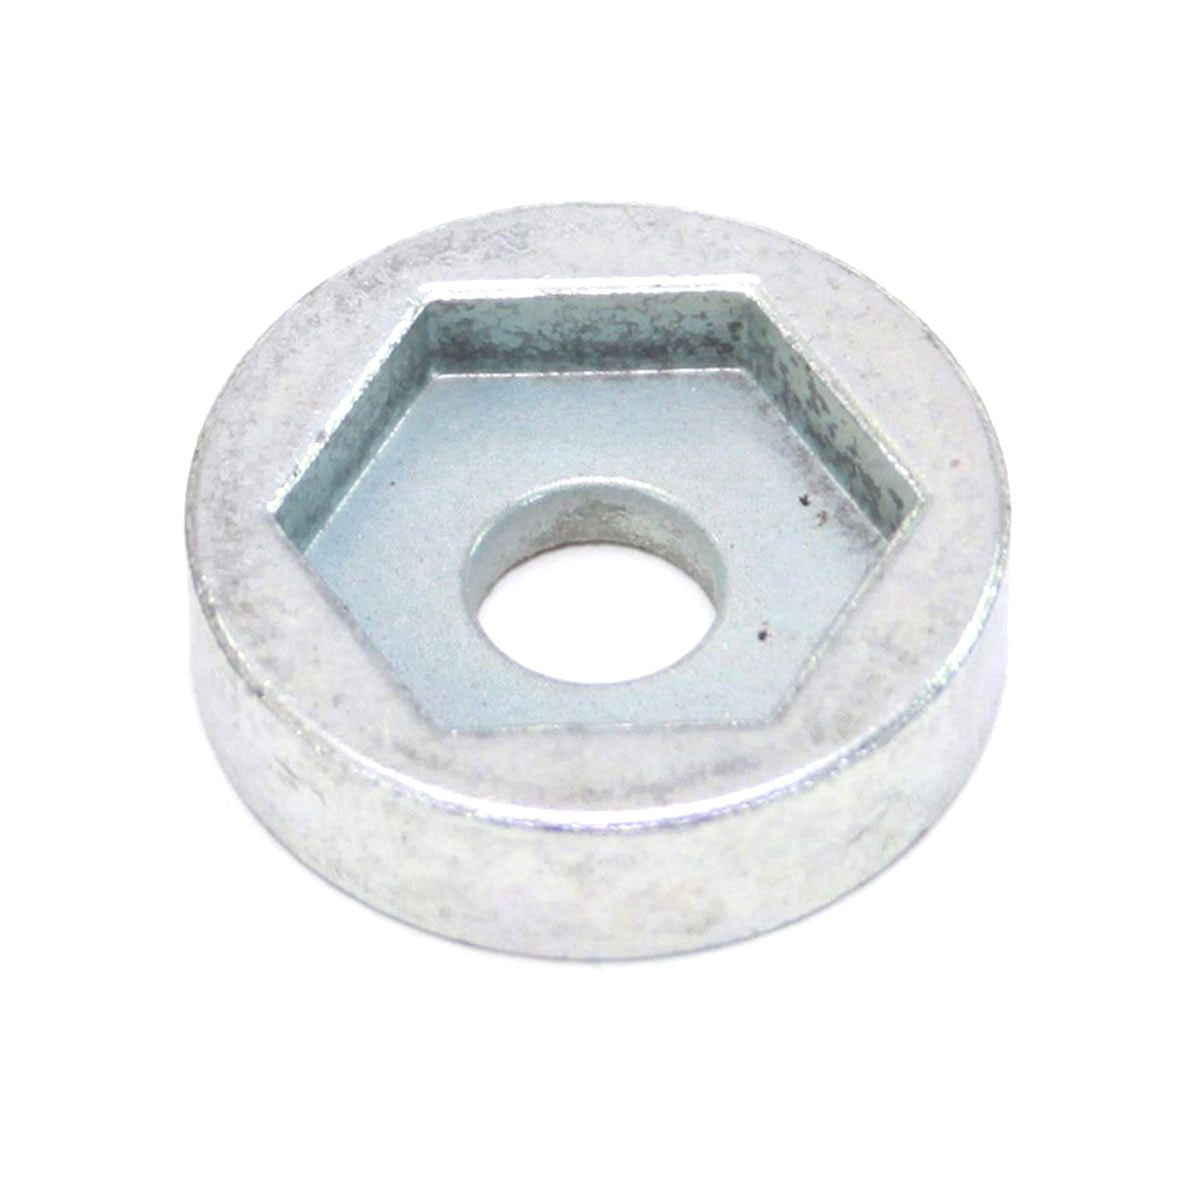 Hex Nuts U2013 Low Cost Wire